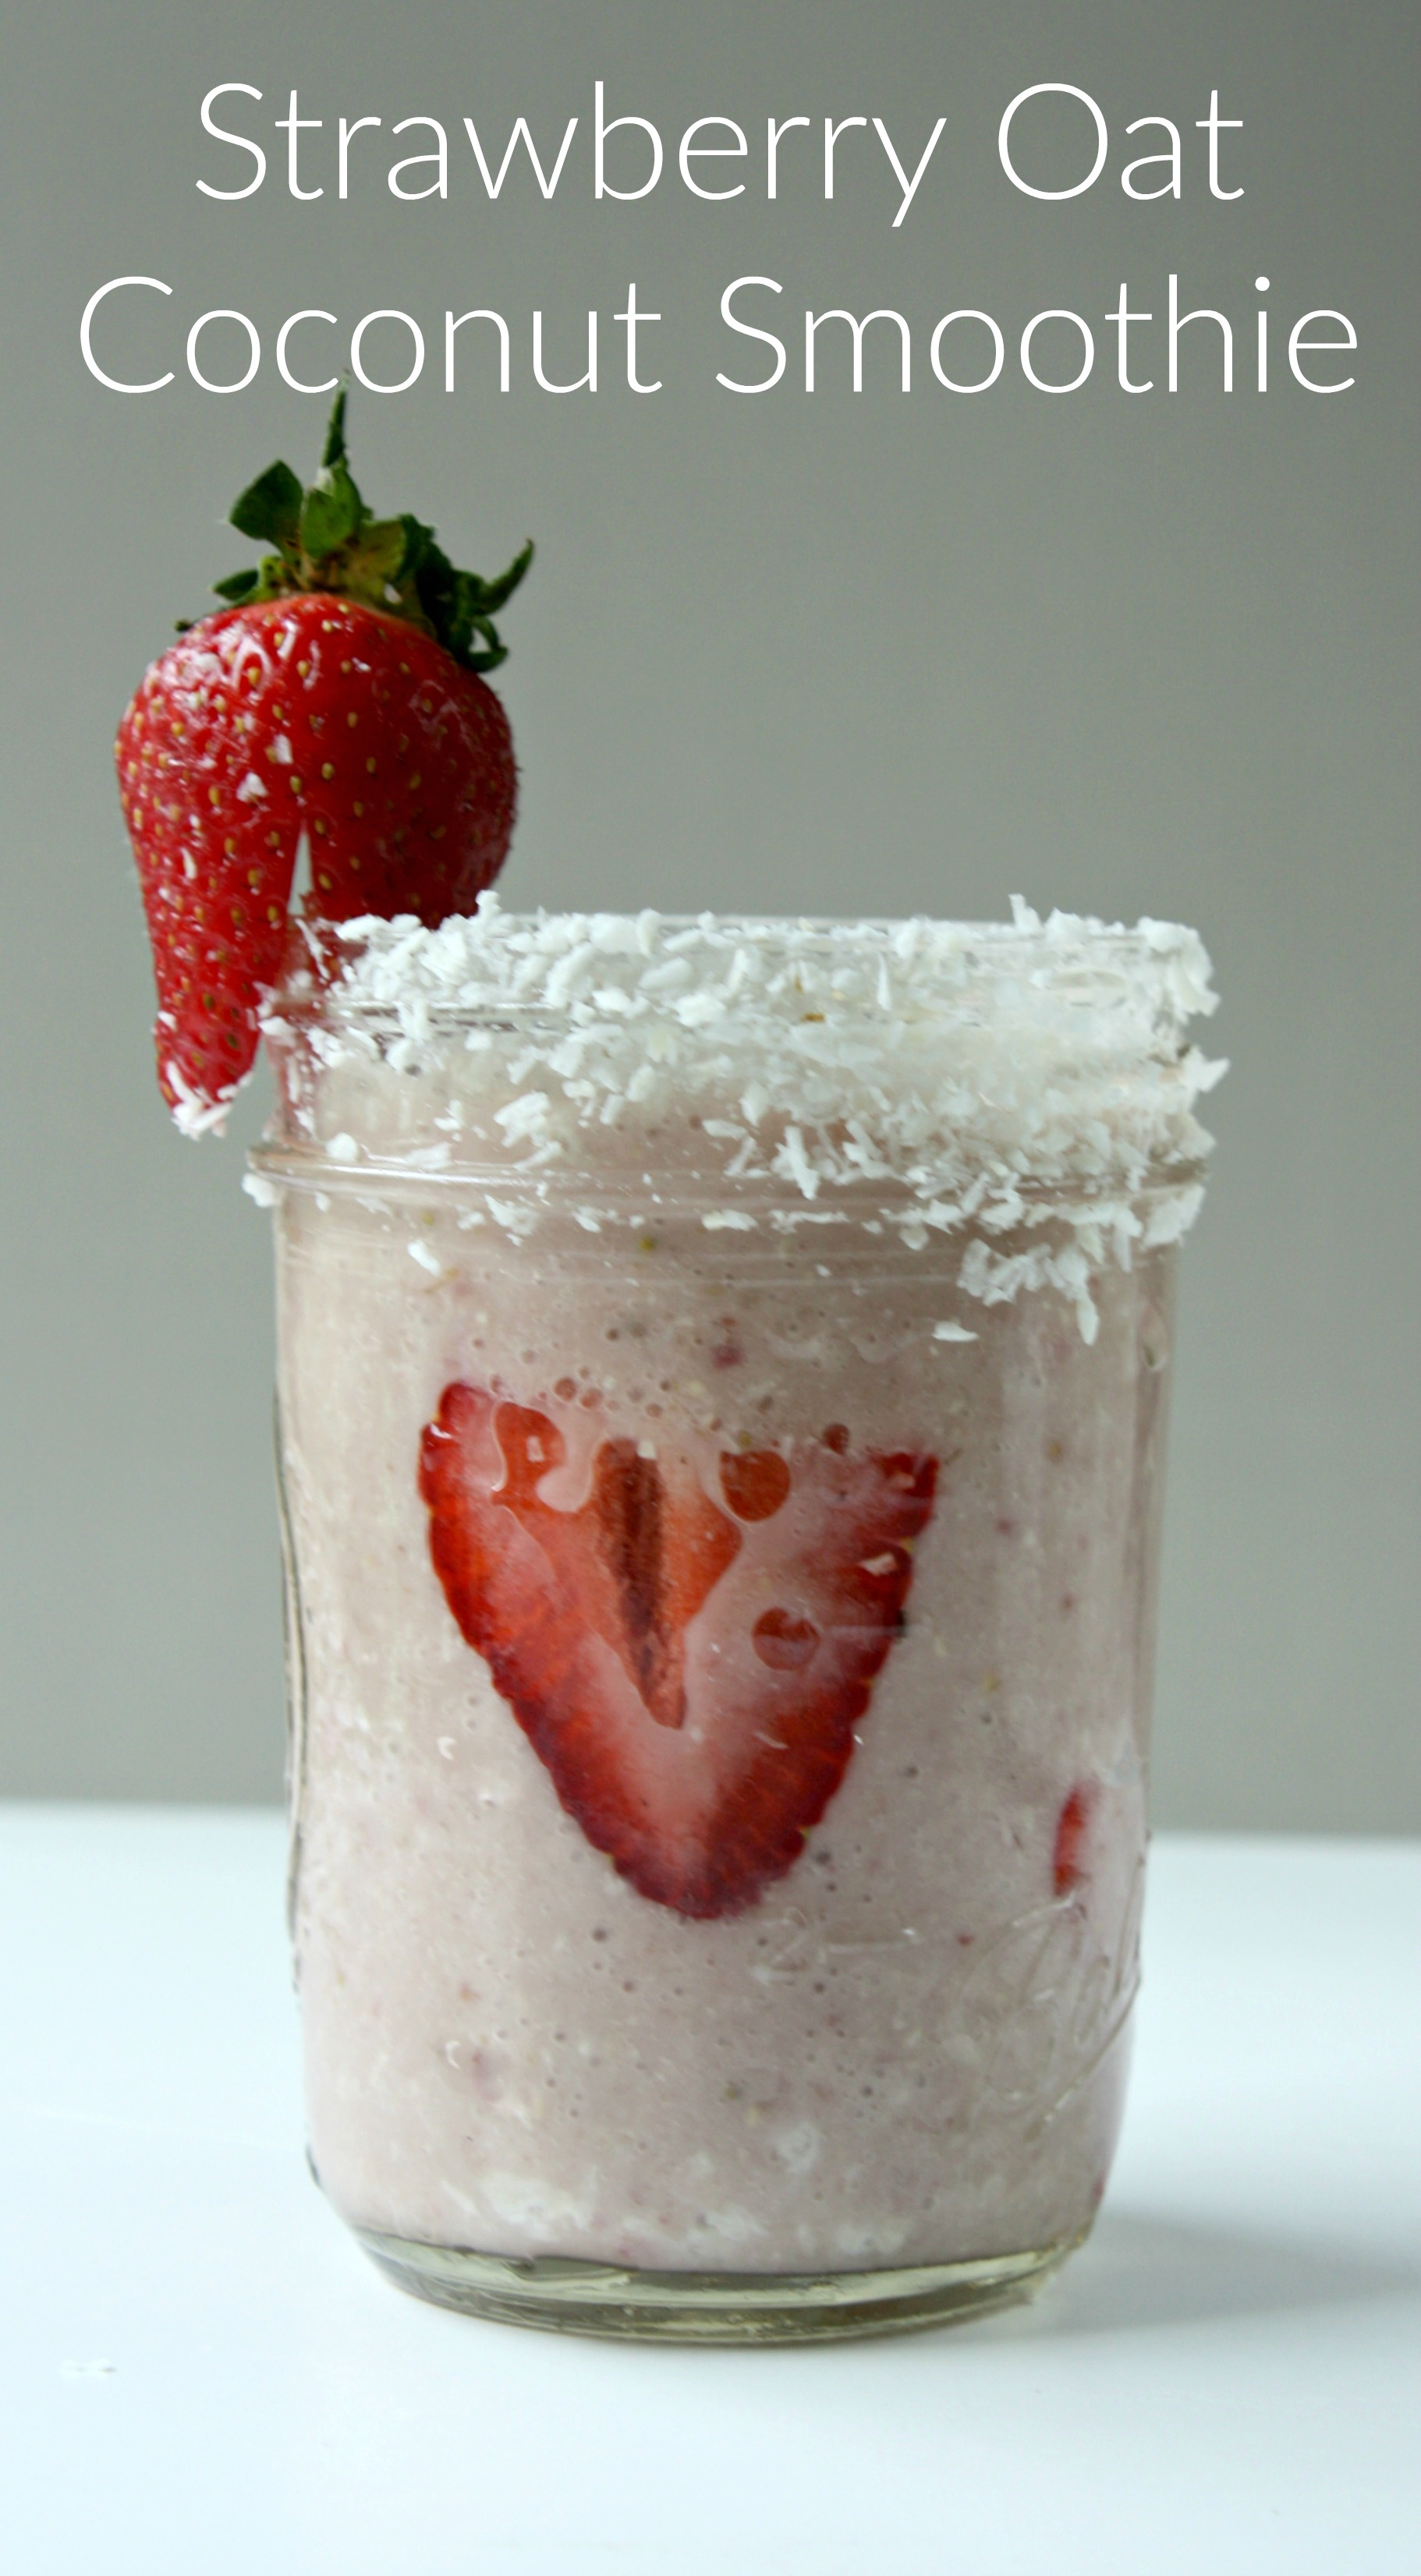 Strawberry Coconut Smoothie. Fuel your morning with this delicious smoothie combo of fresh strawberries and coconut.